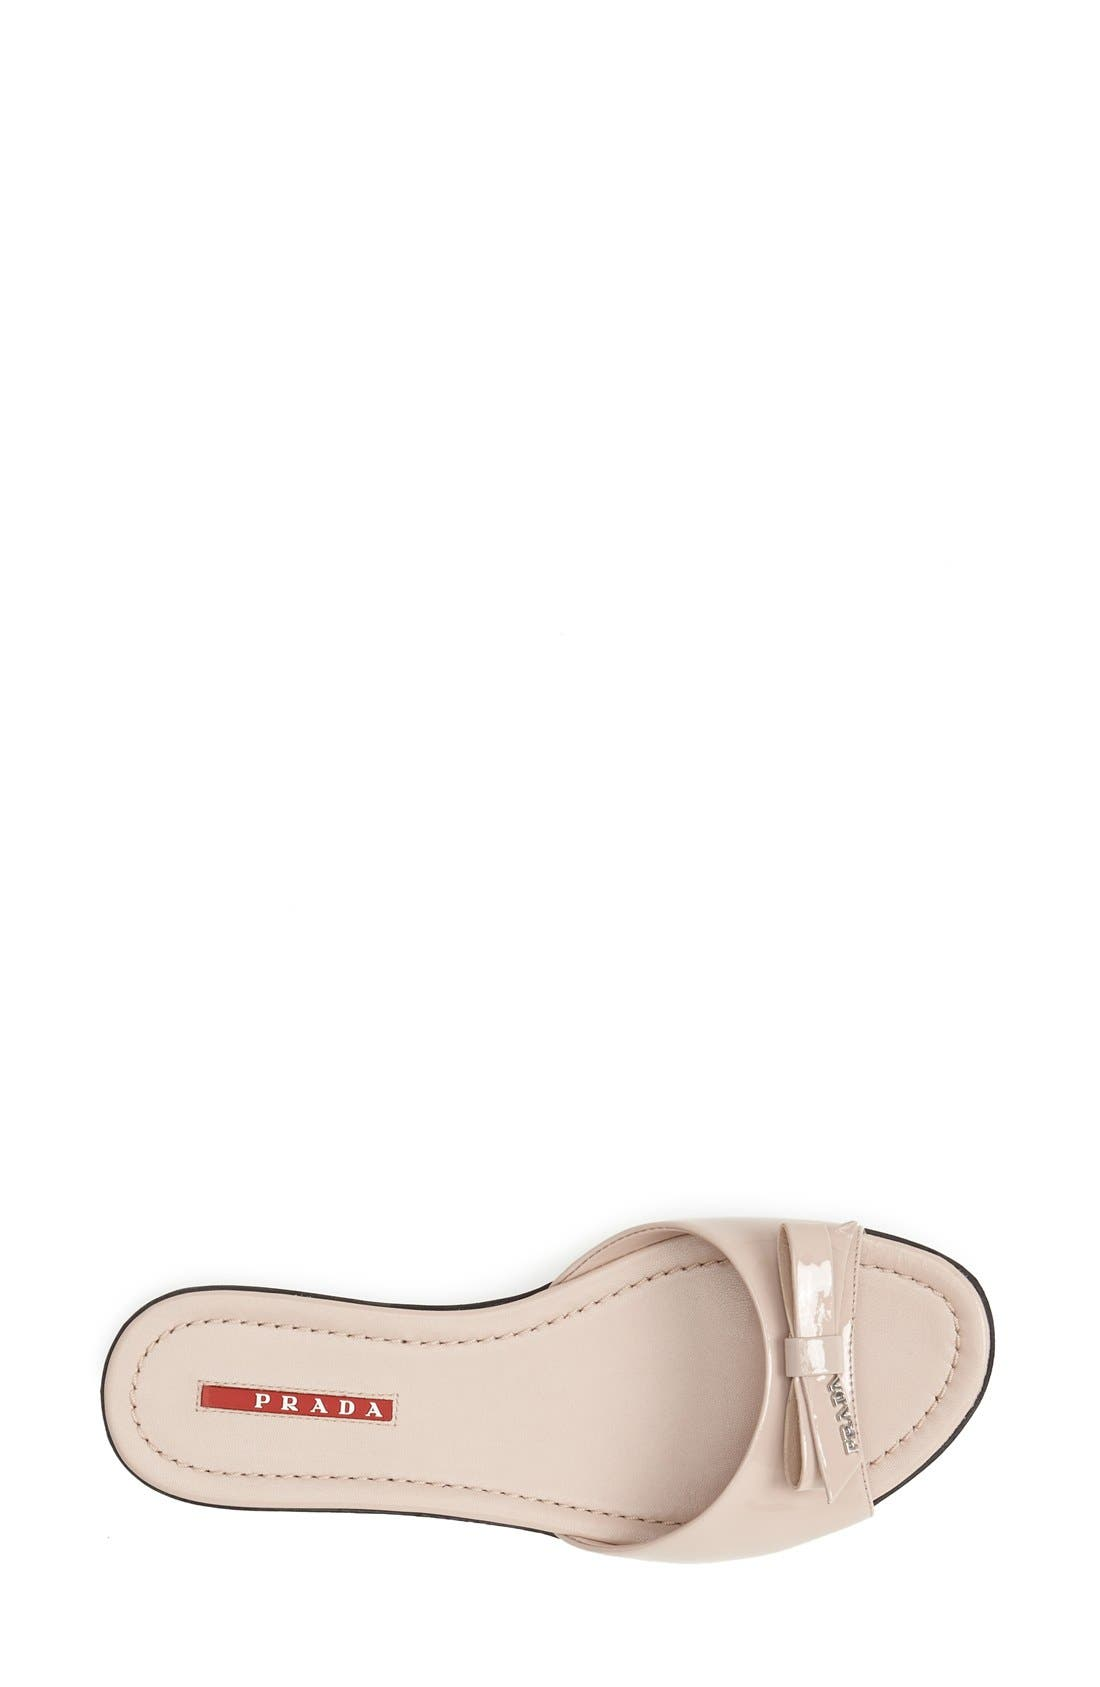 Alternate Image 3  - Prada Bow Slide Sandal (Women)